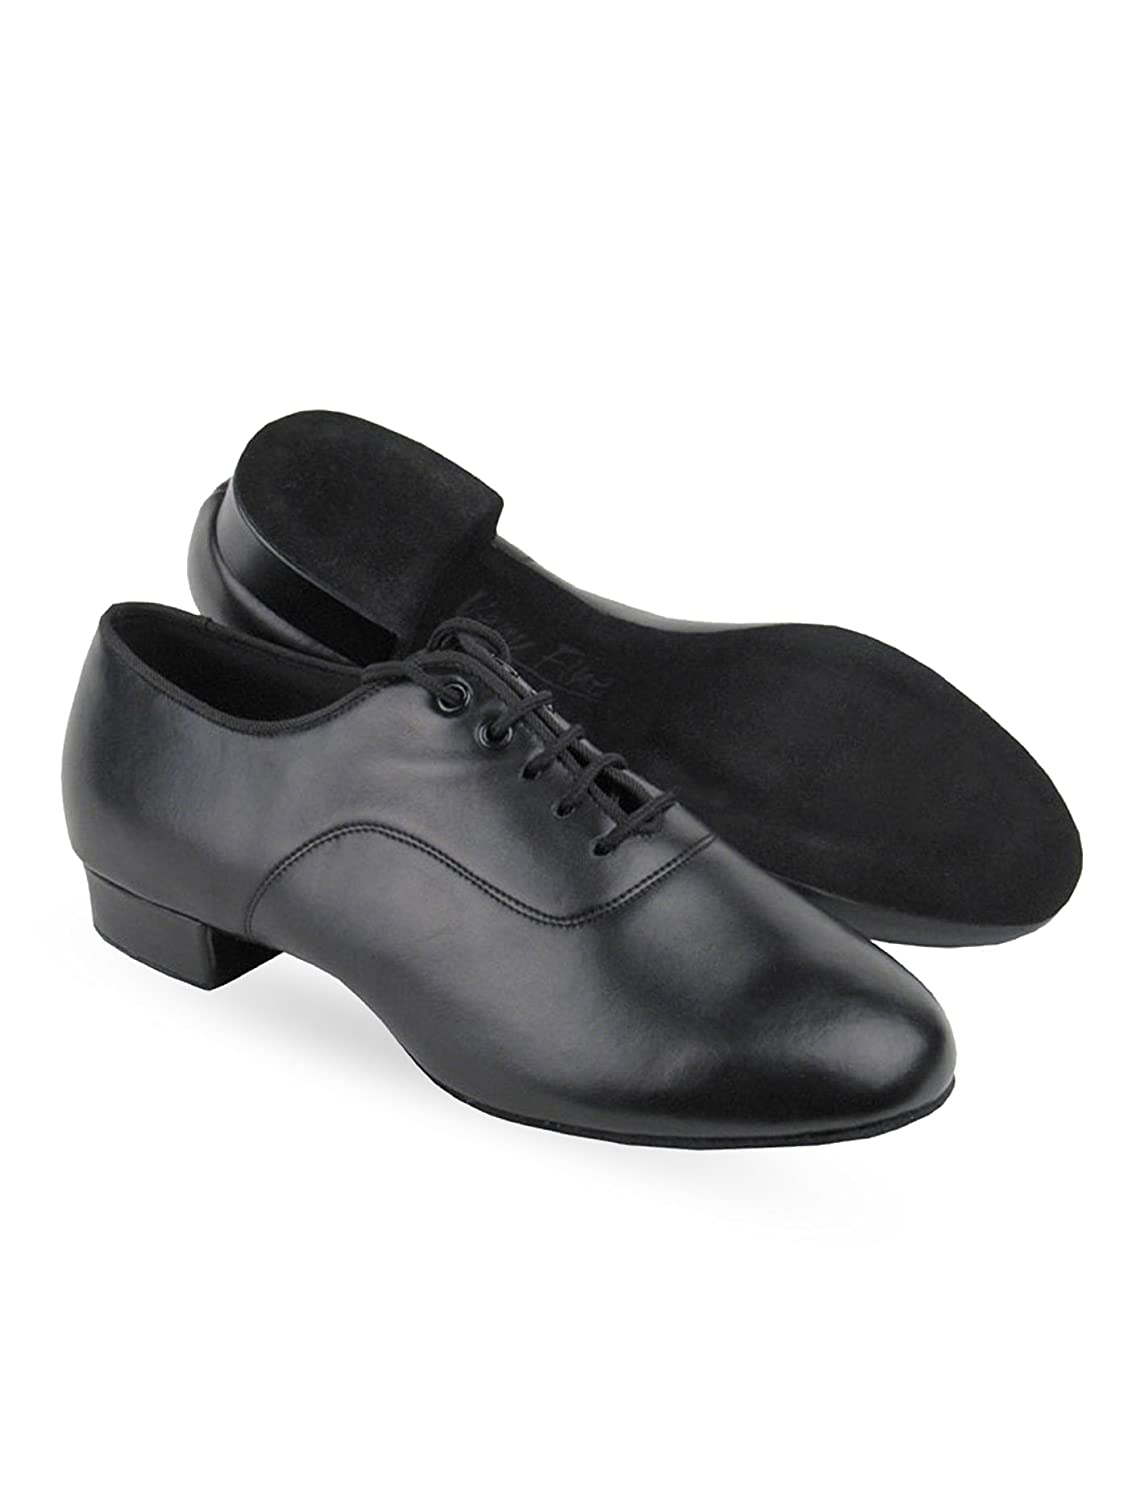 Mens Standard-C Series Ballroom Shoes C2503